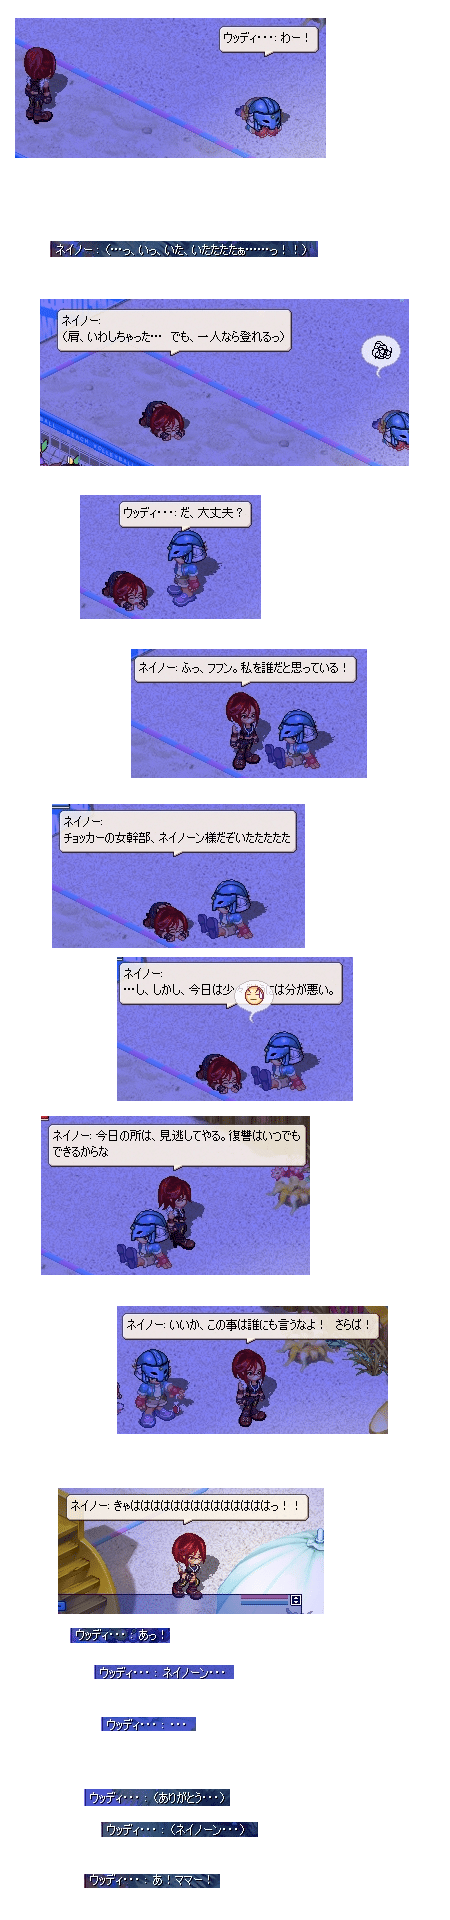 2007062523.png